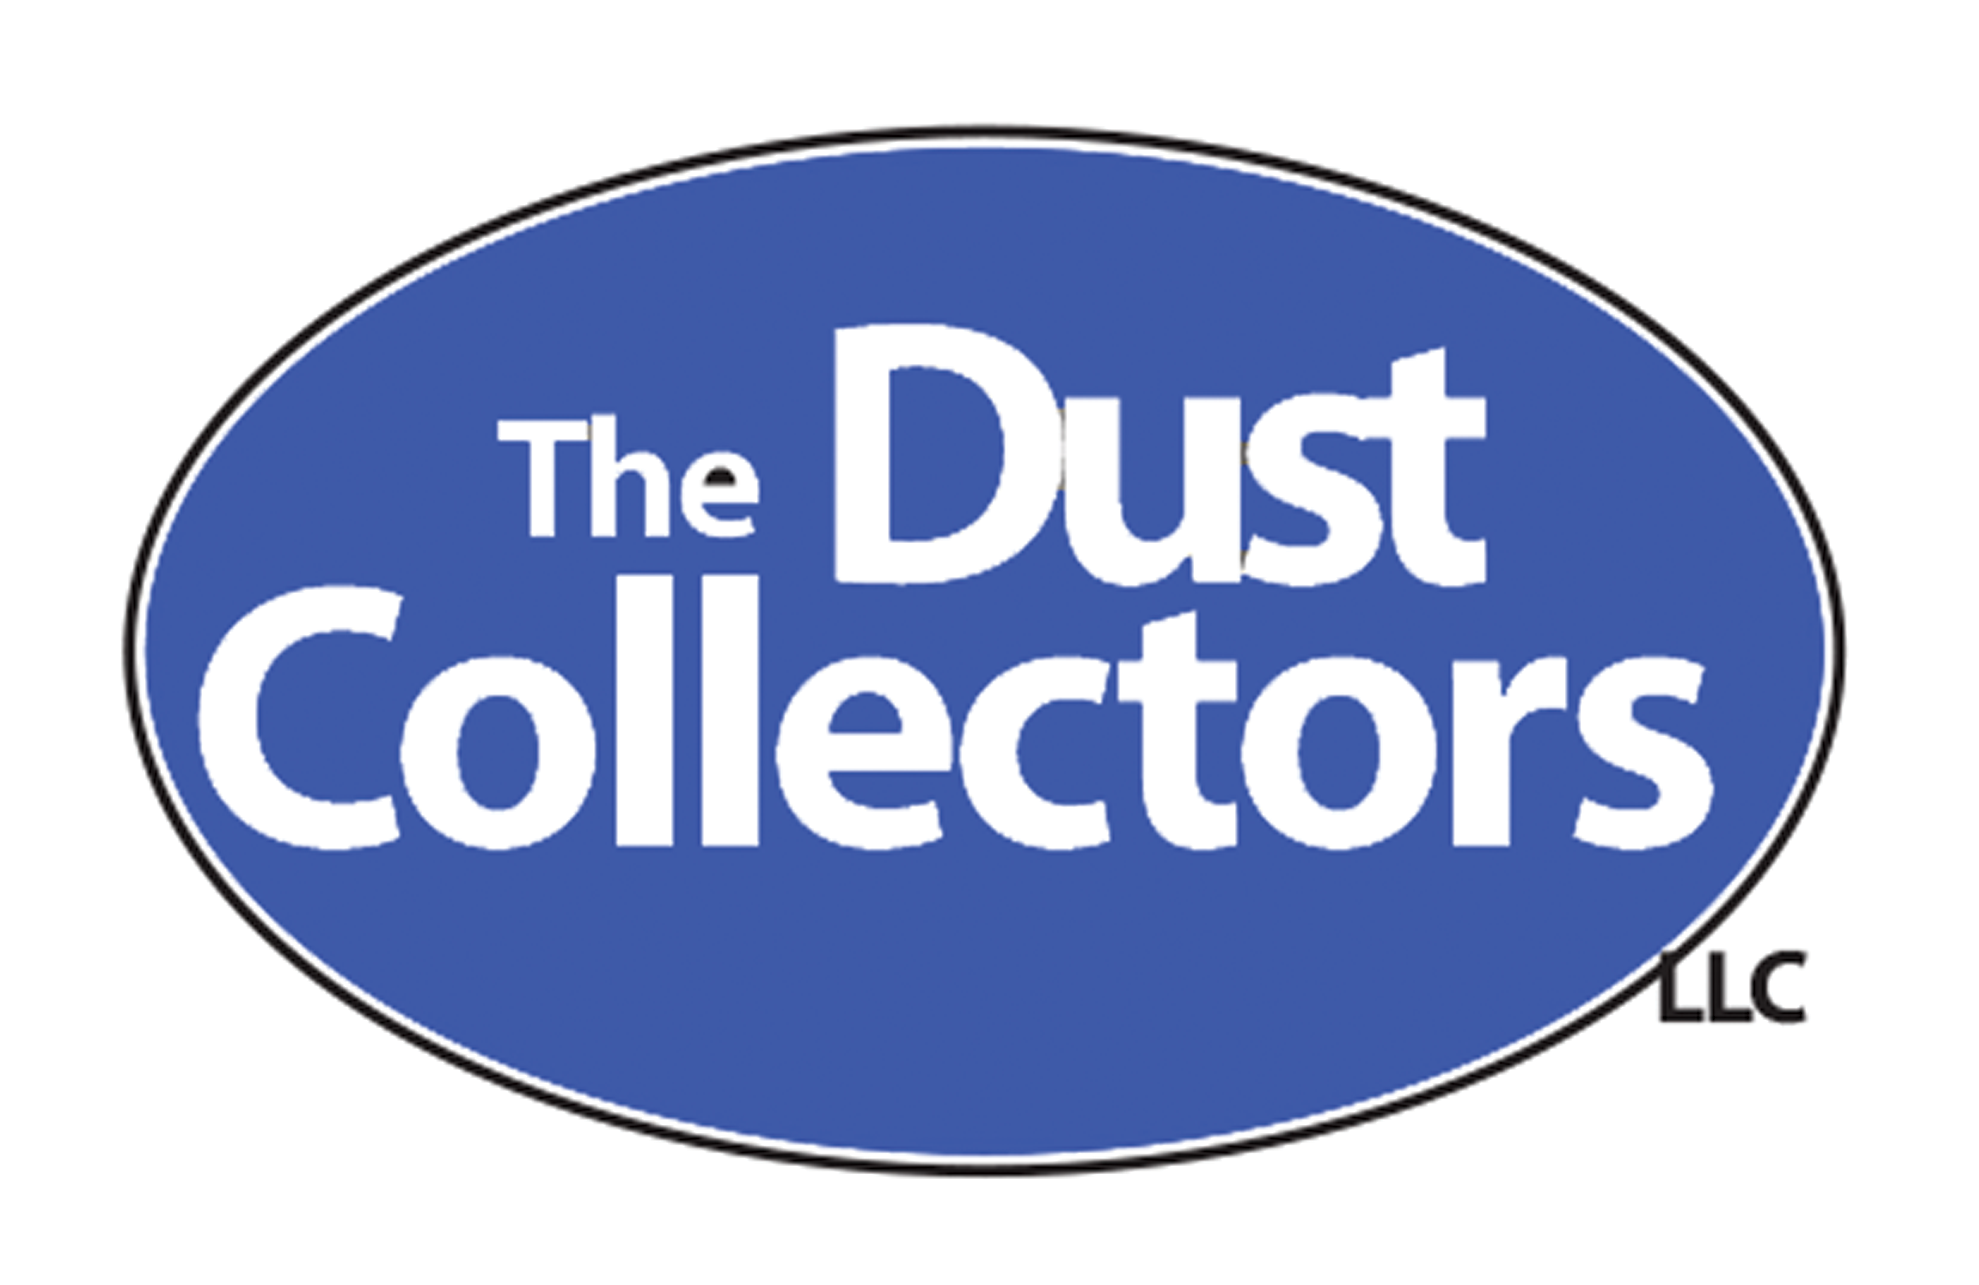 Diamond Sponsors: The Dust Collectors